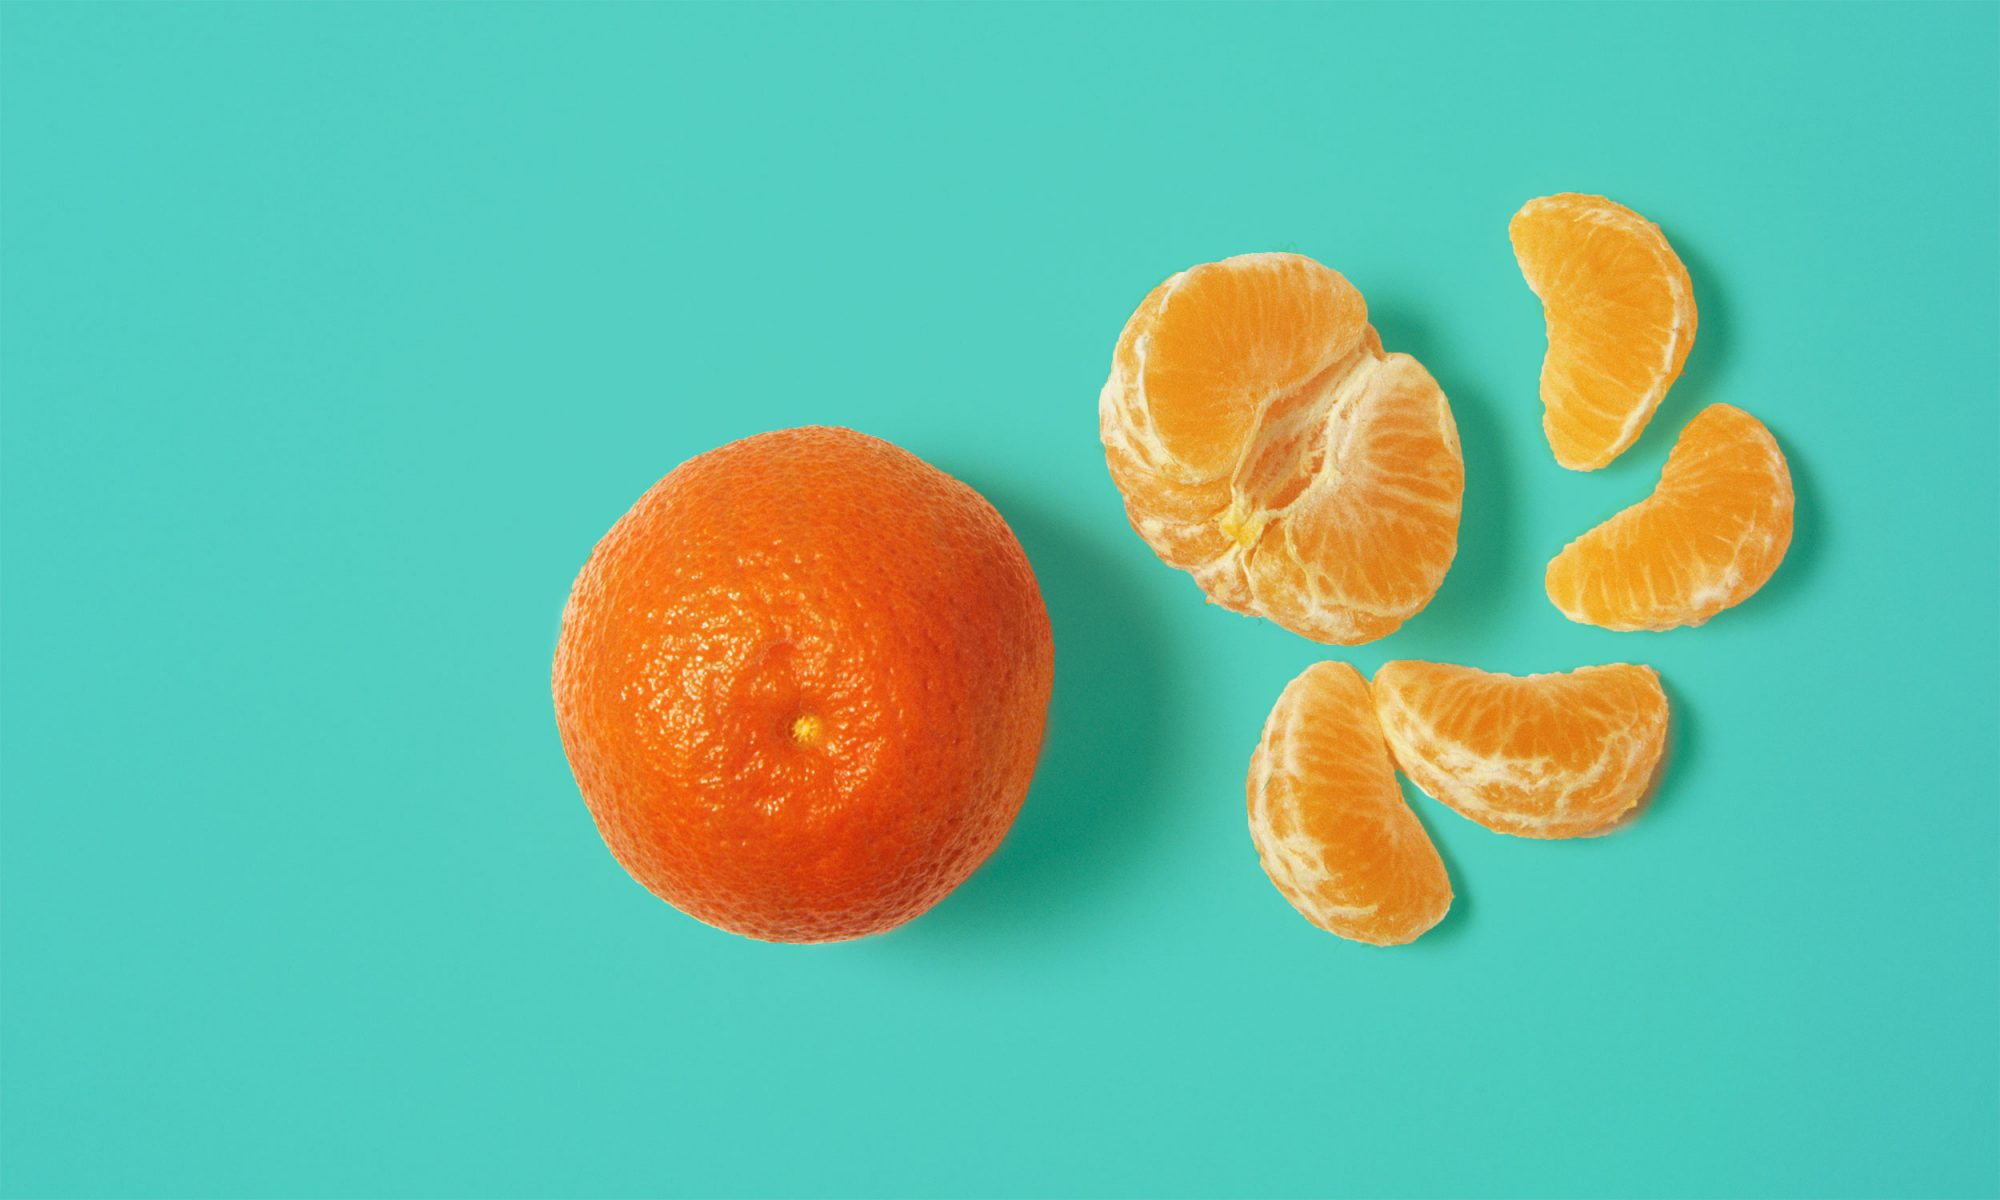 EC: What's the Difference Between Clementines and Oranges?